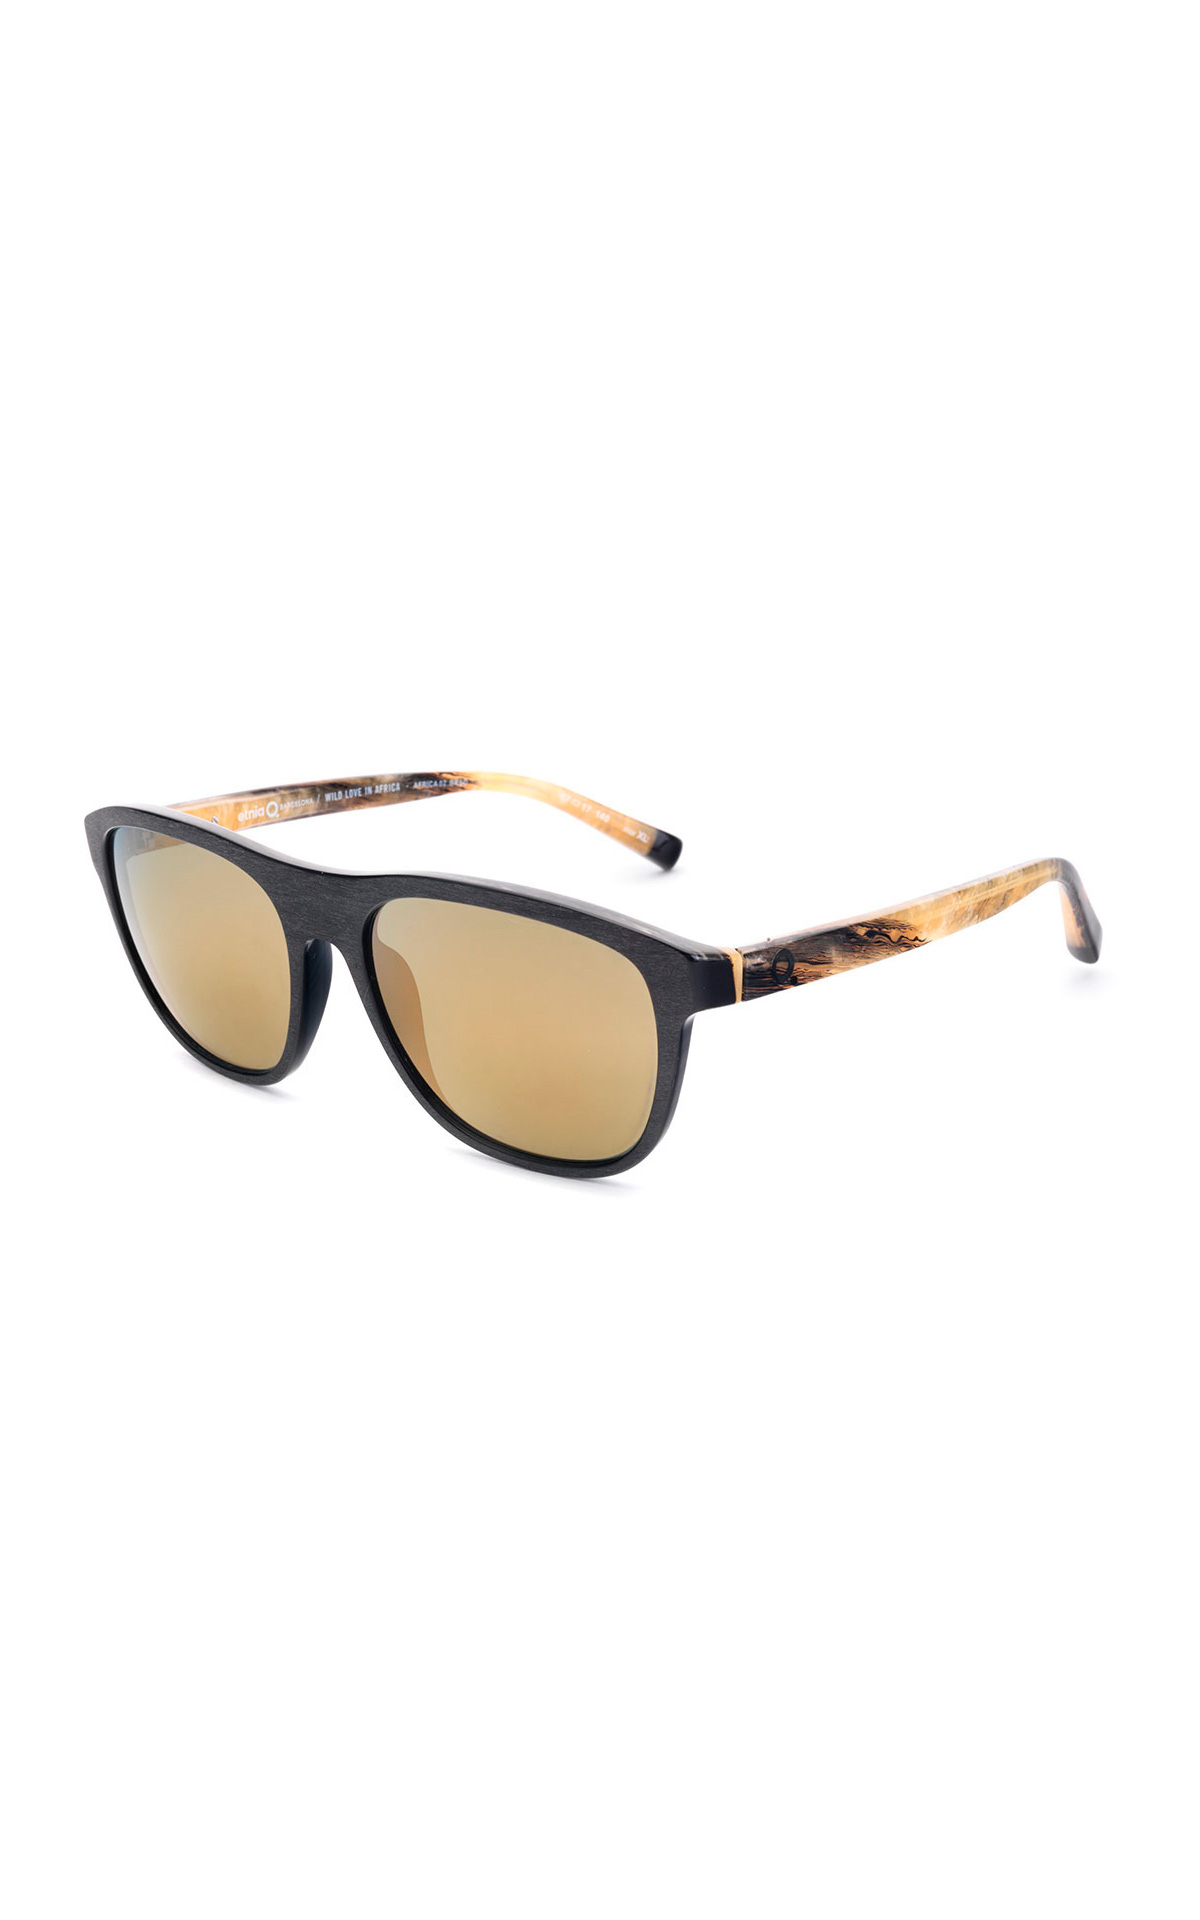 Brown Wild Africa Sunglasses Etnia Barcelona